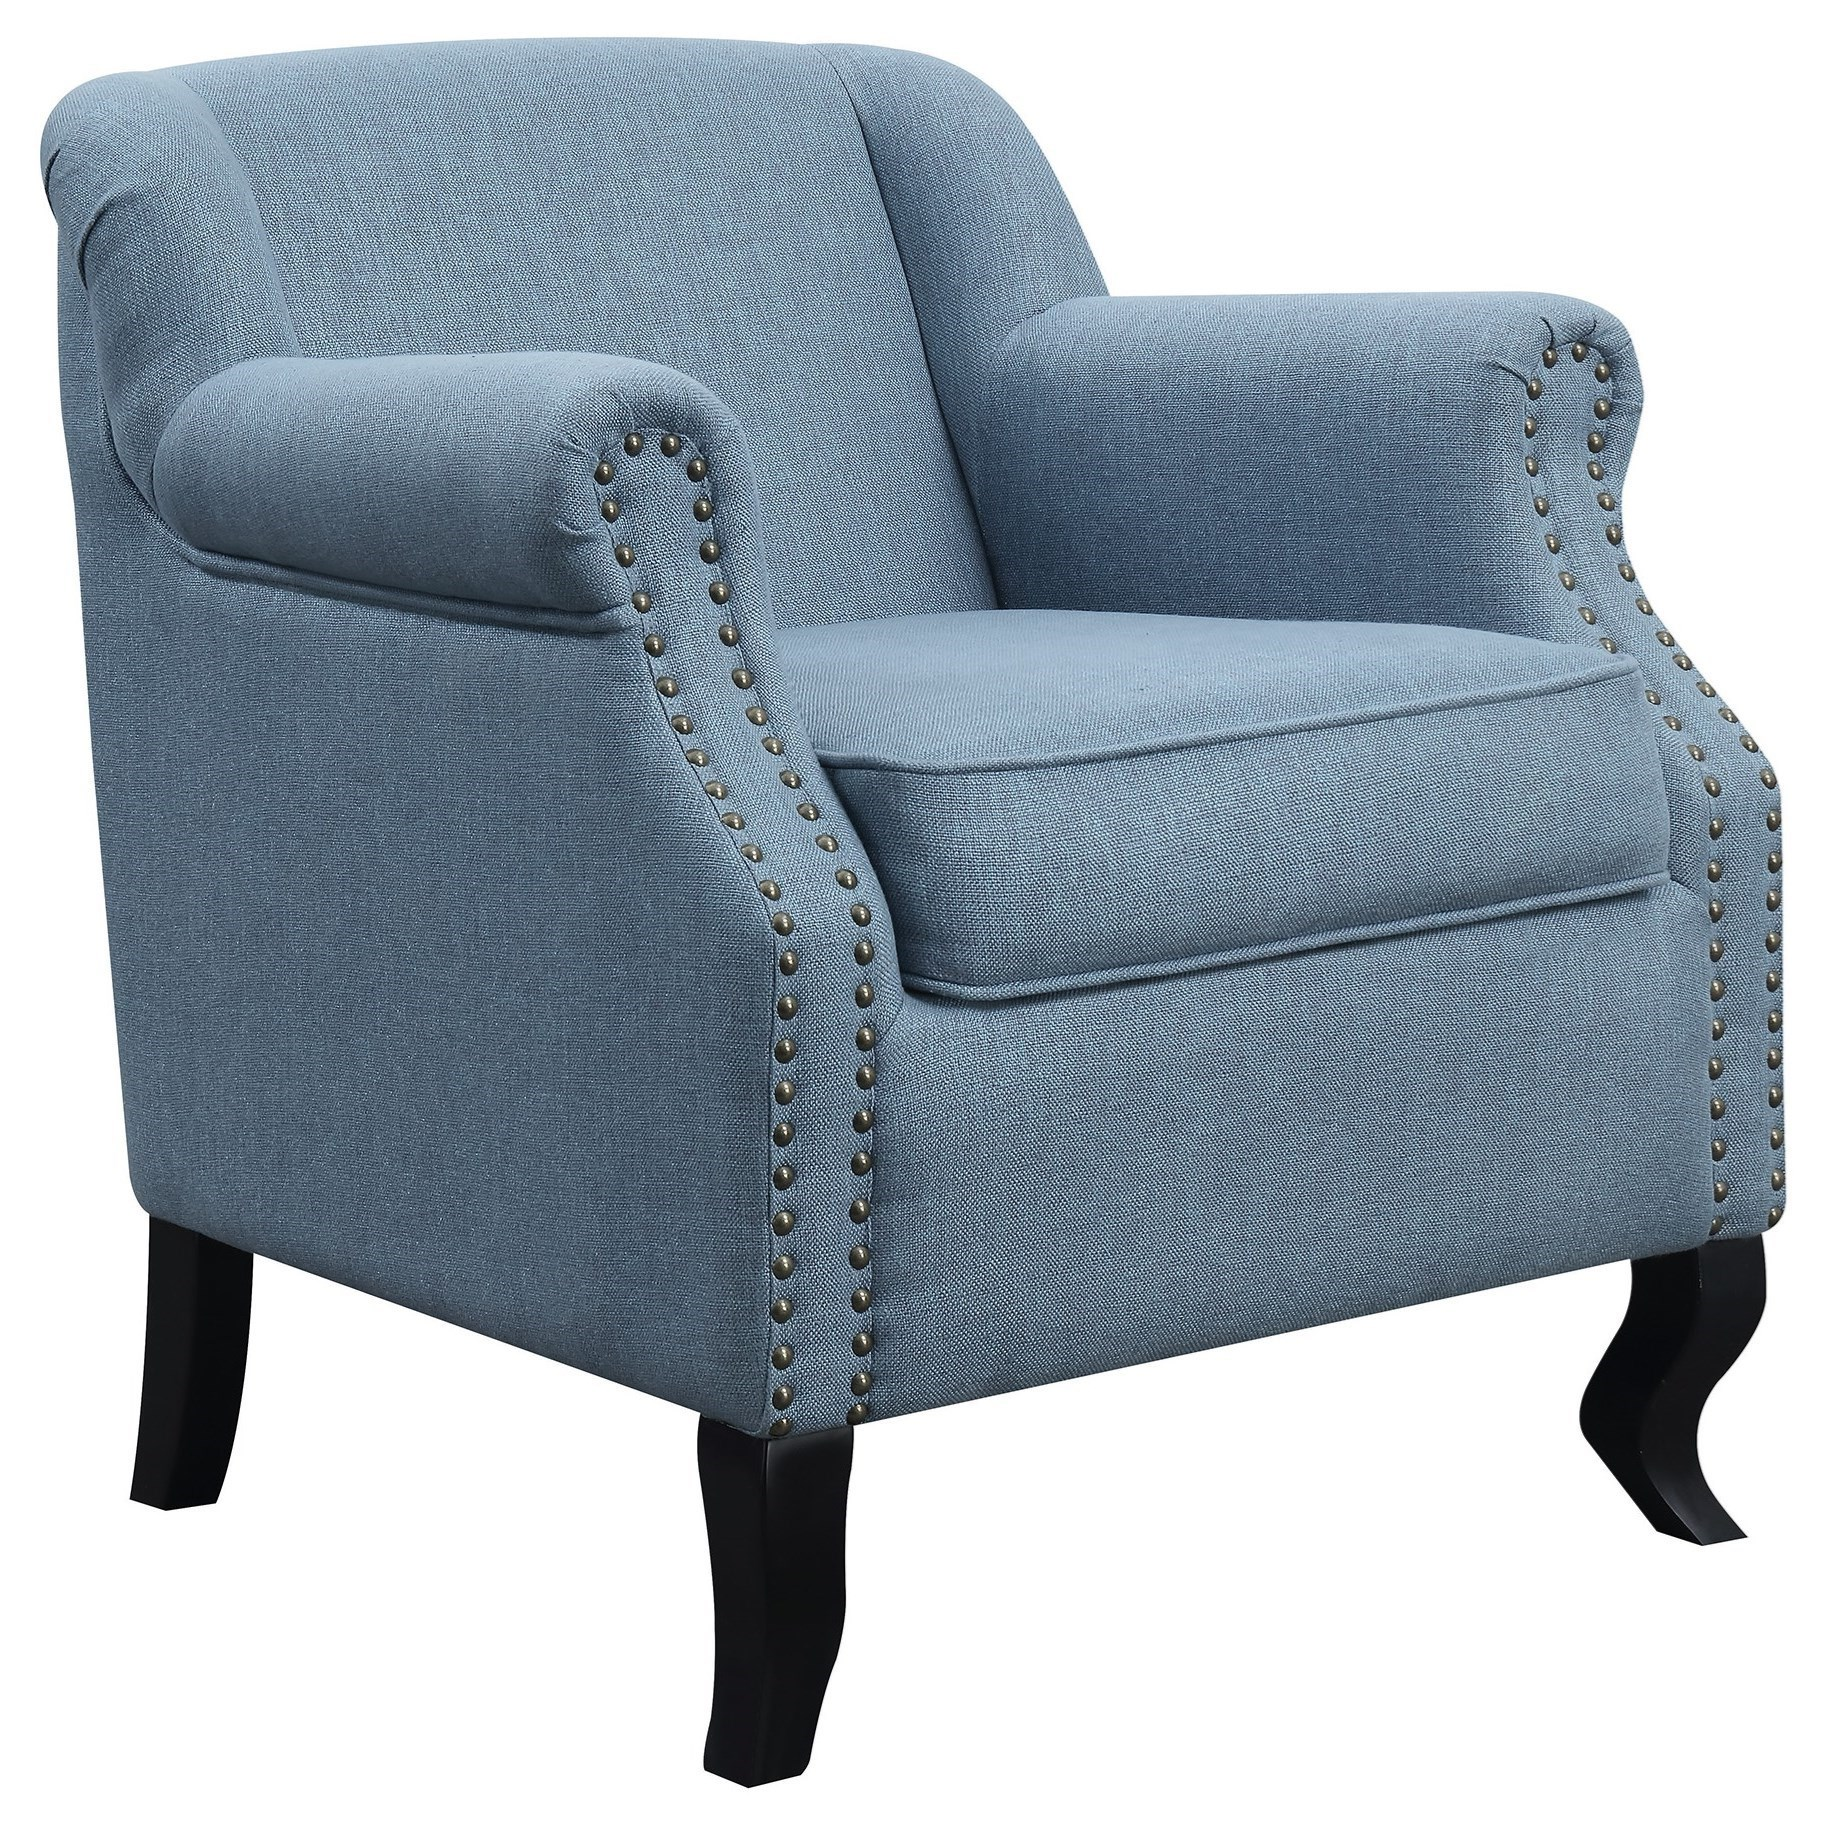 Ordinaire Coaster Accent Seating Traditional Accent Chair With Nailhead Trim